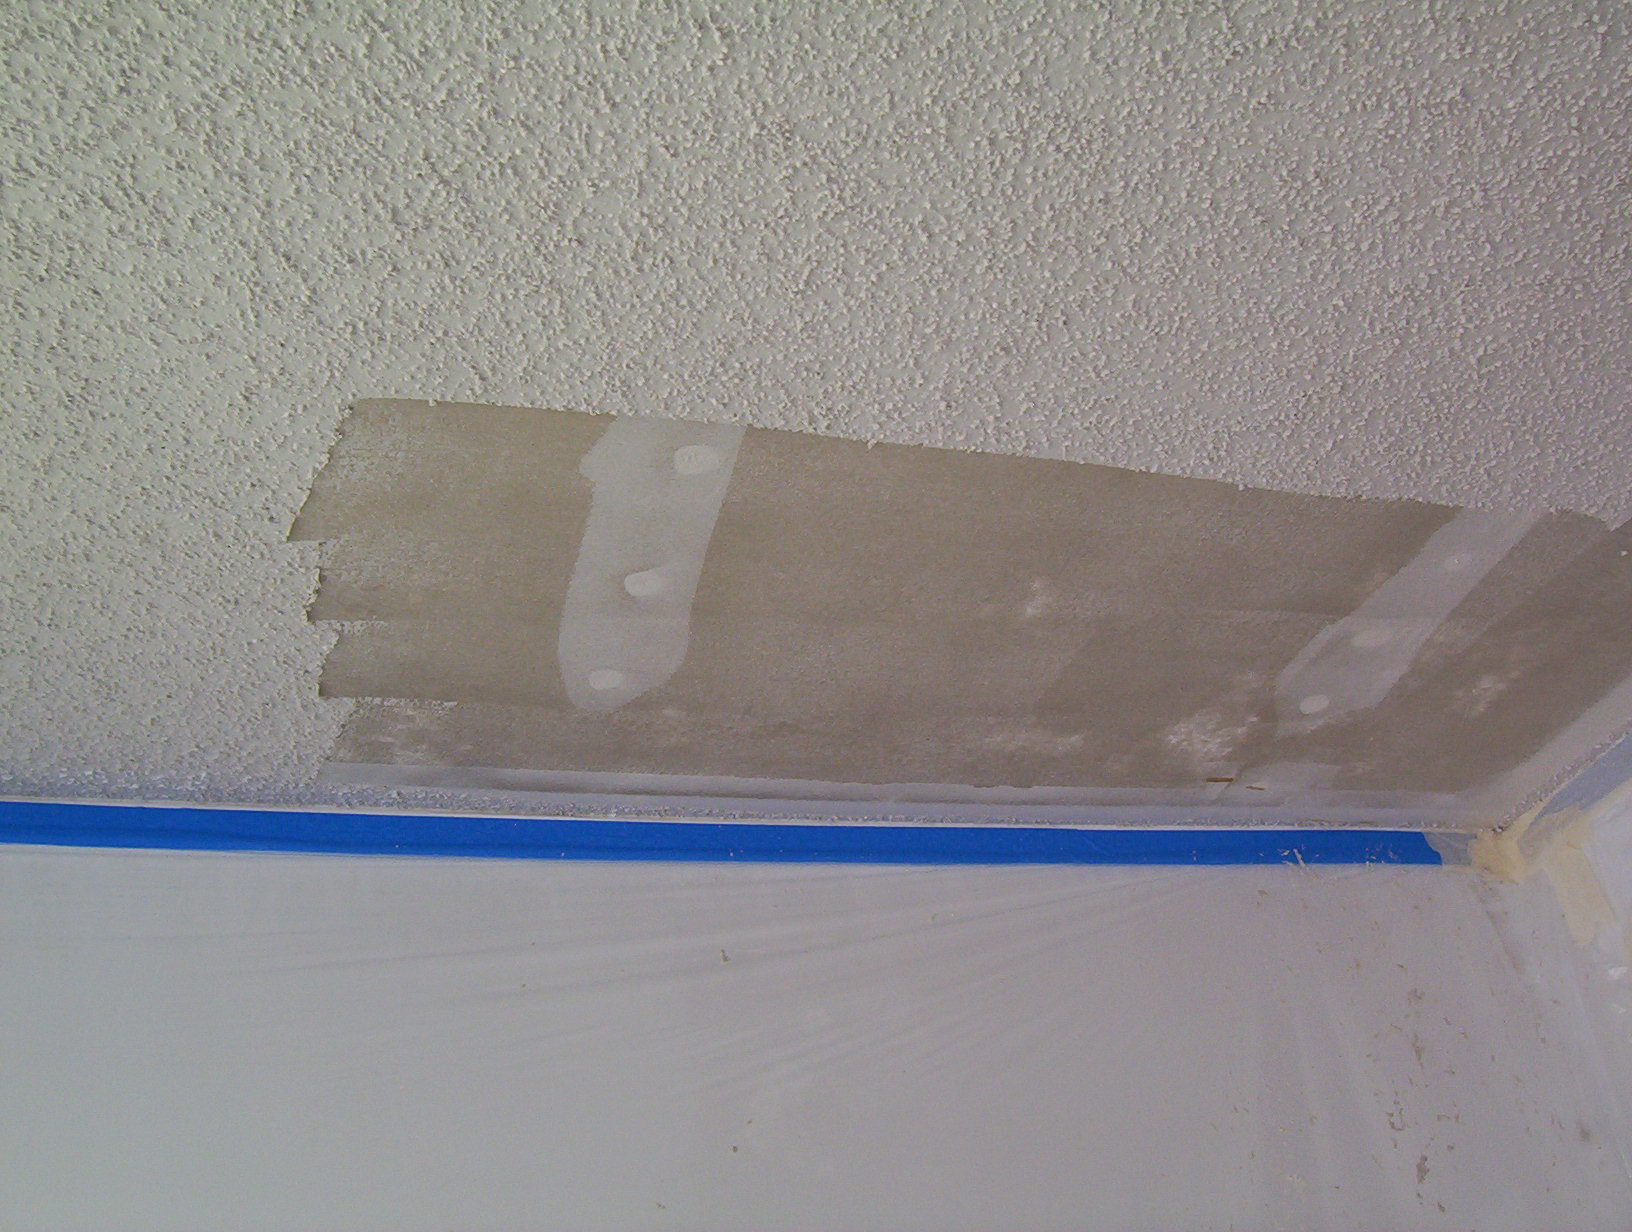 Popcorn Ceiling : Popcorn Ceiling Repair Pretty Handy Tackles All Sorts Of,Popcorn Removal ...